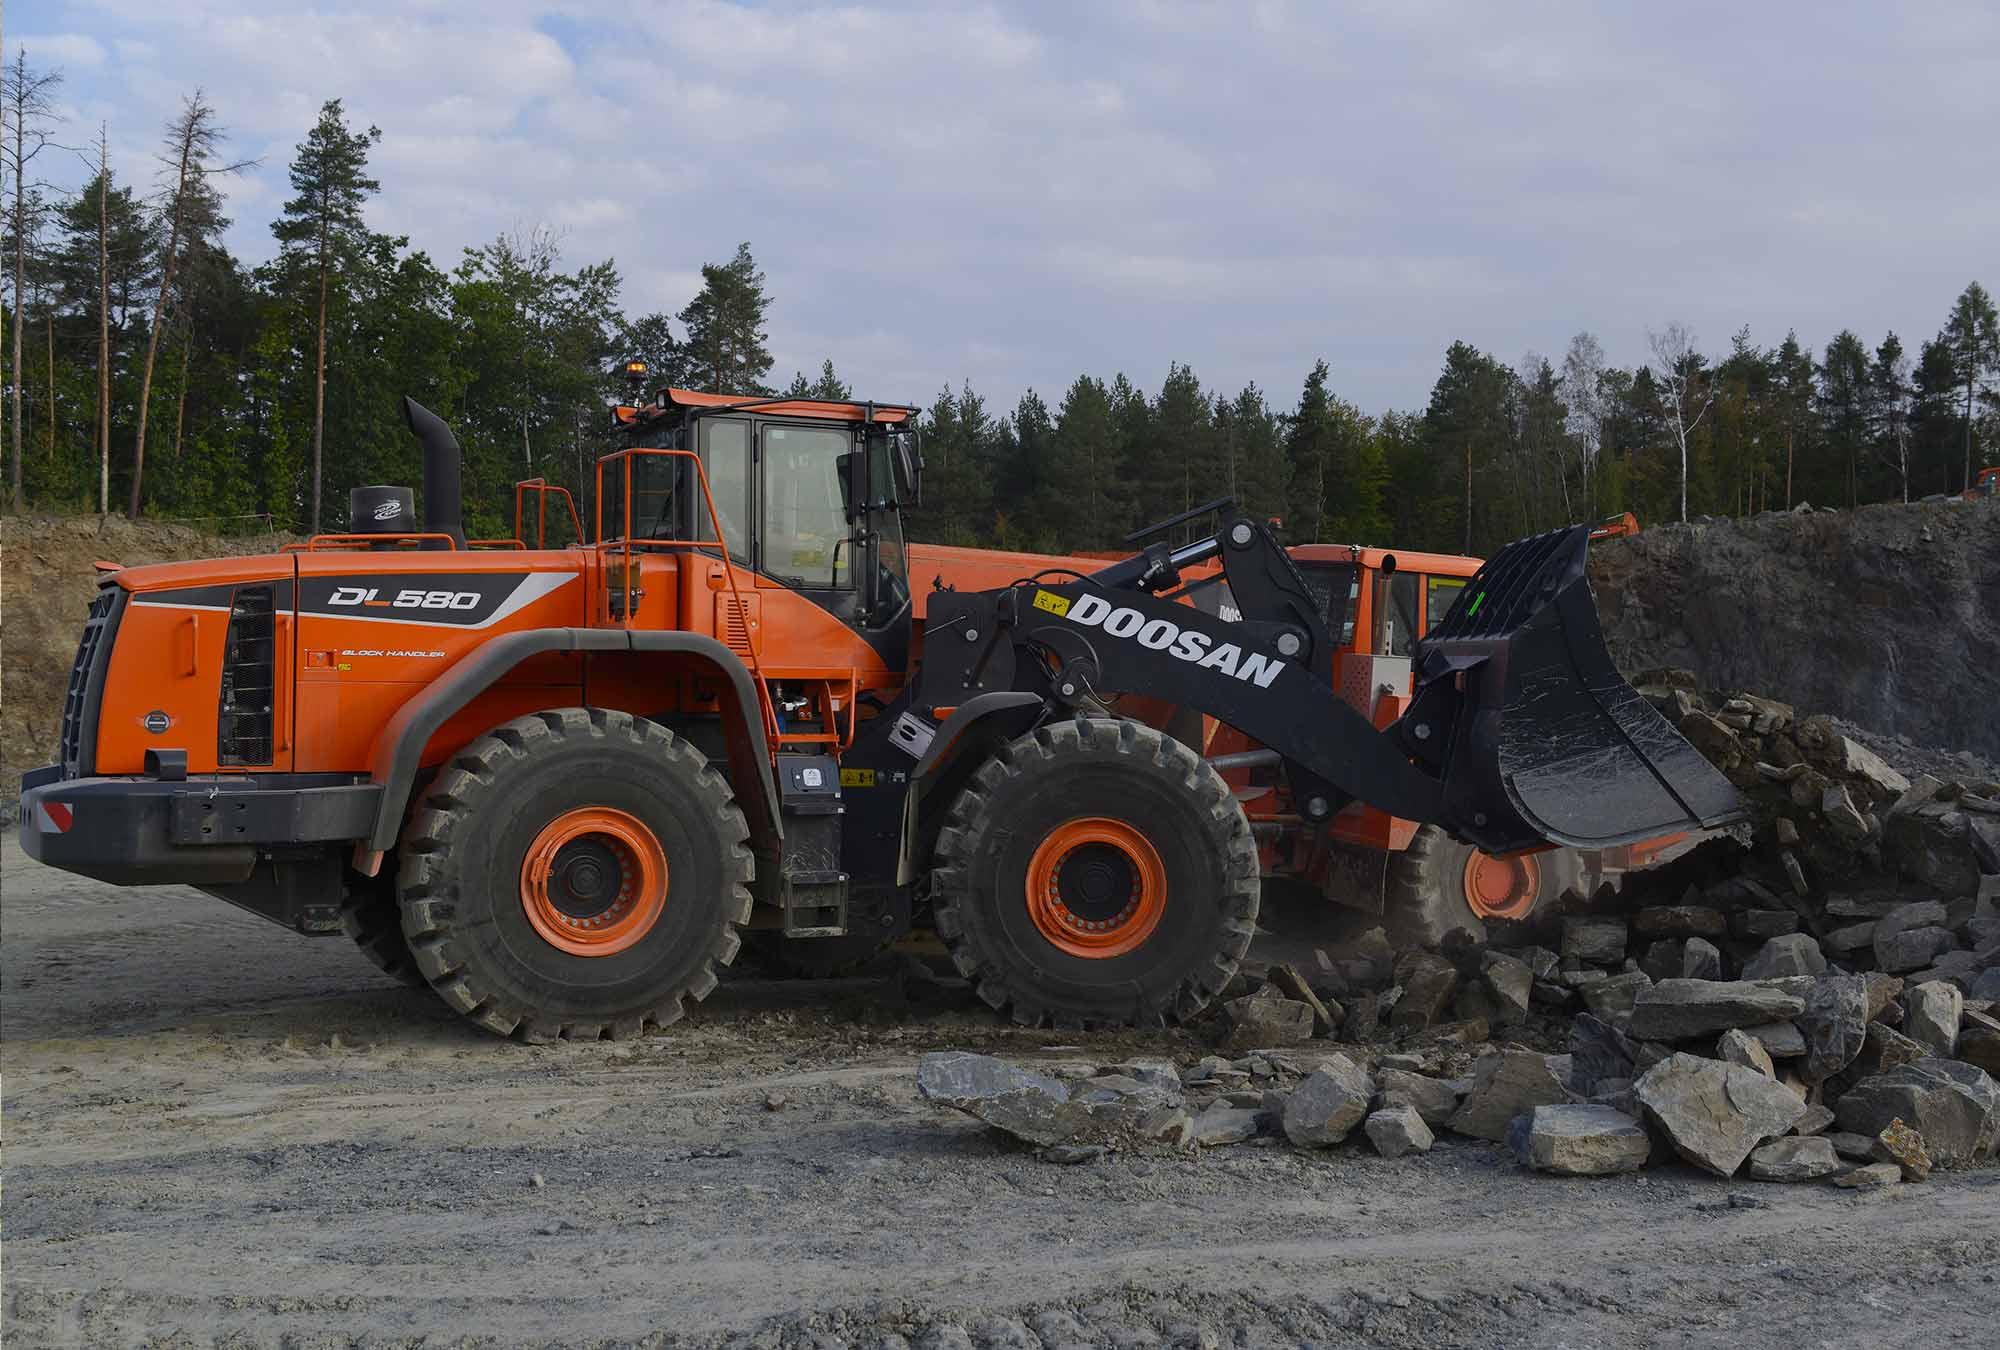 DL580-5 | Doosan Infracore Europe